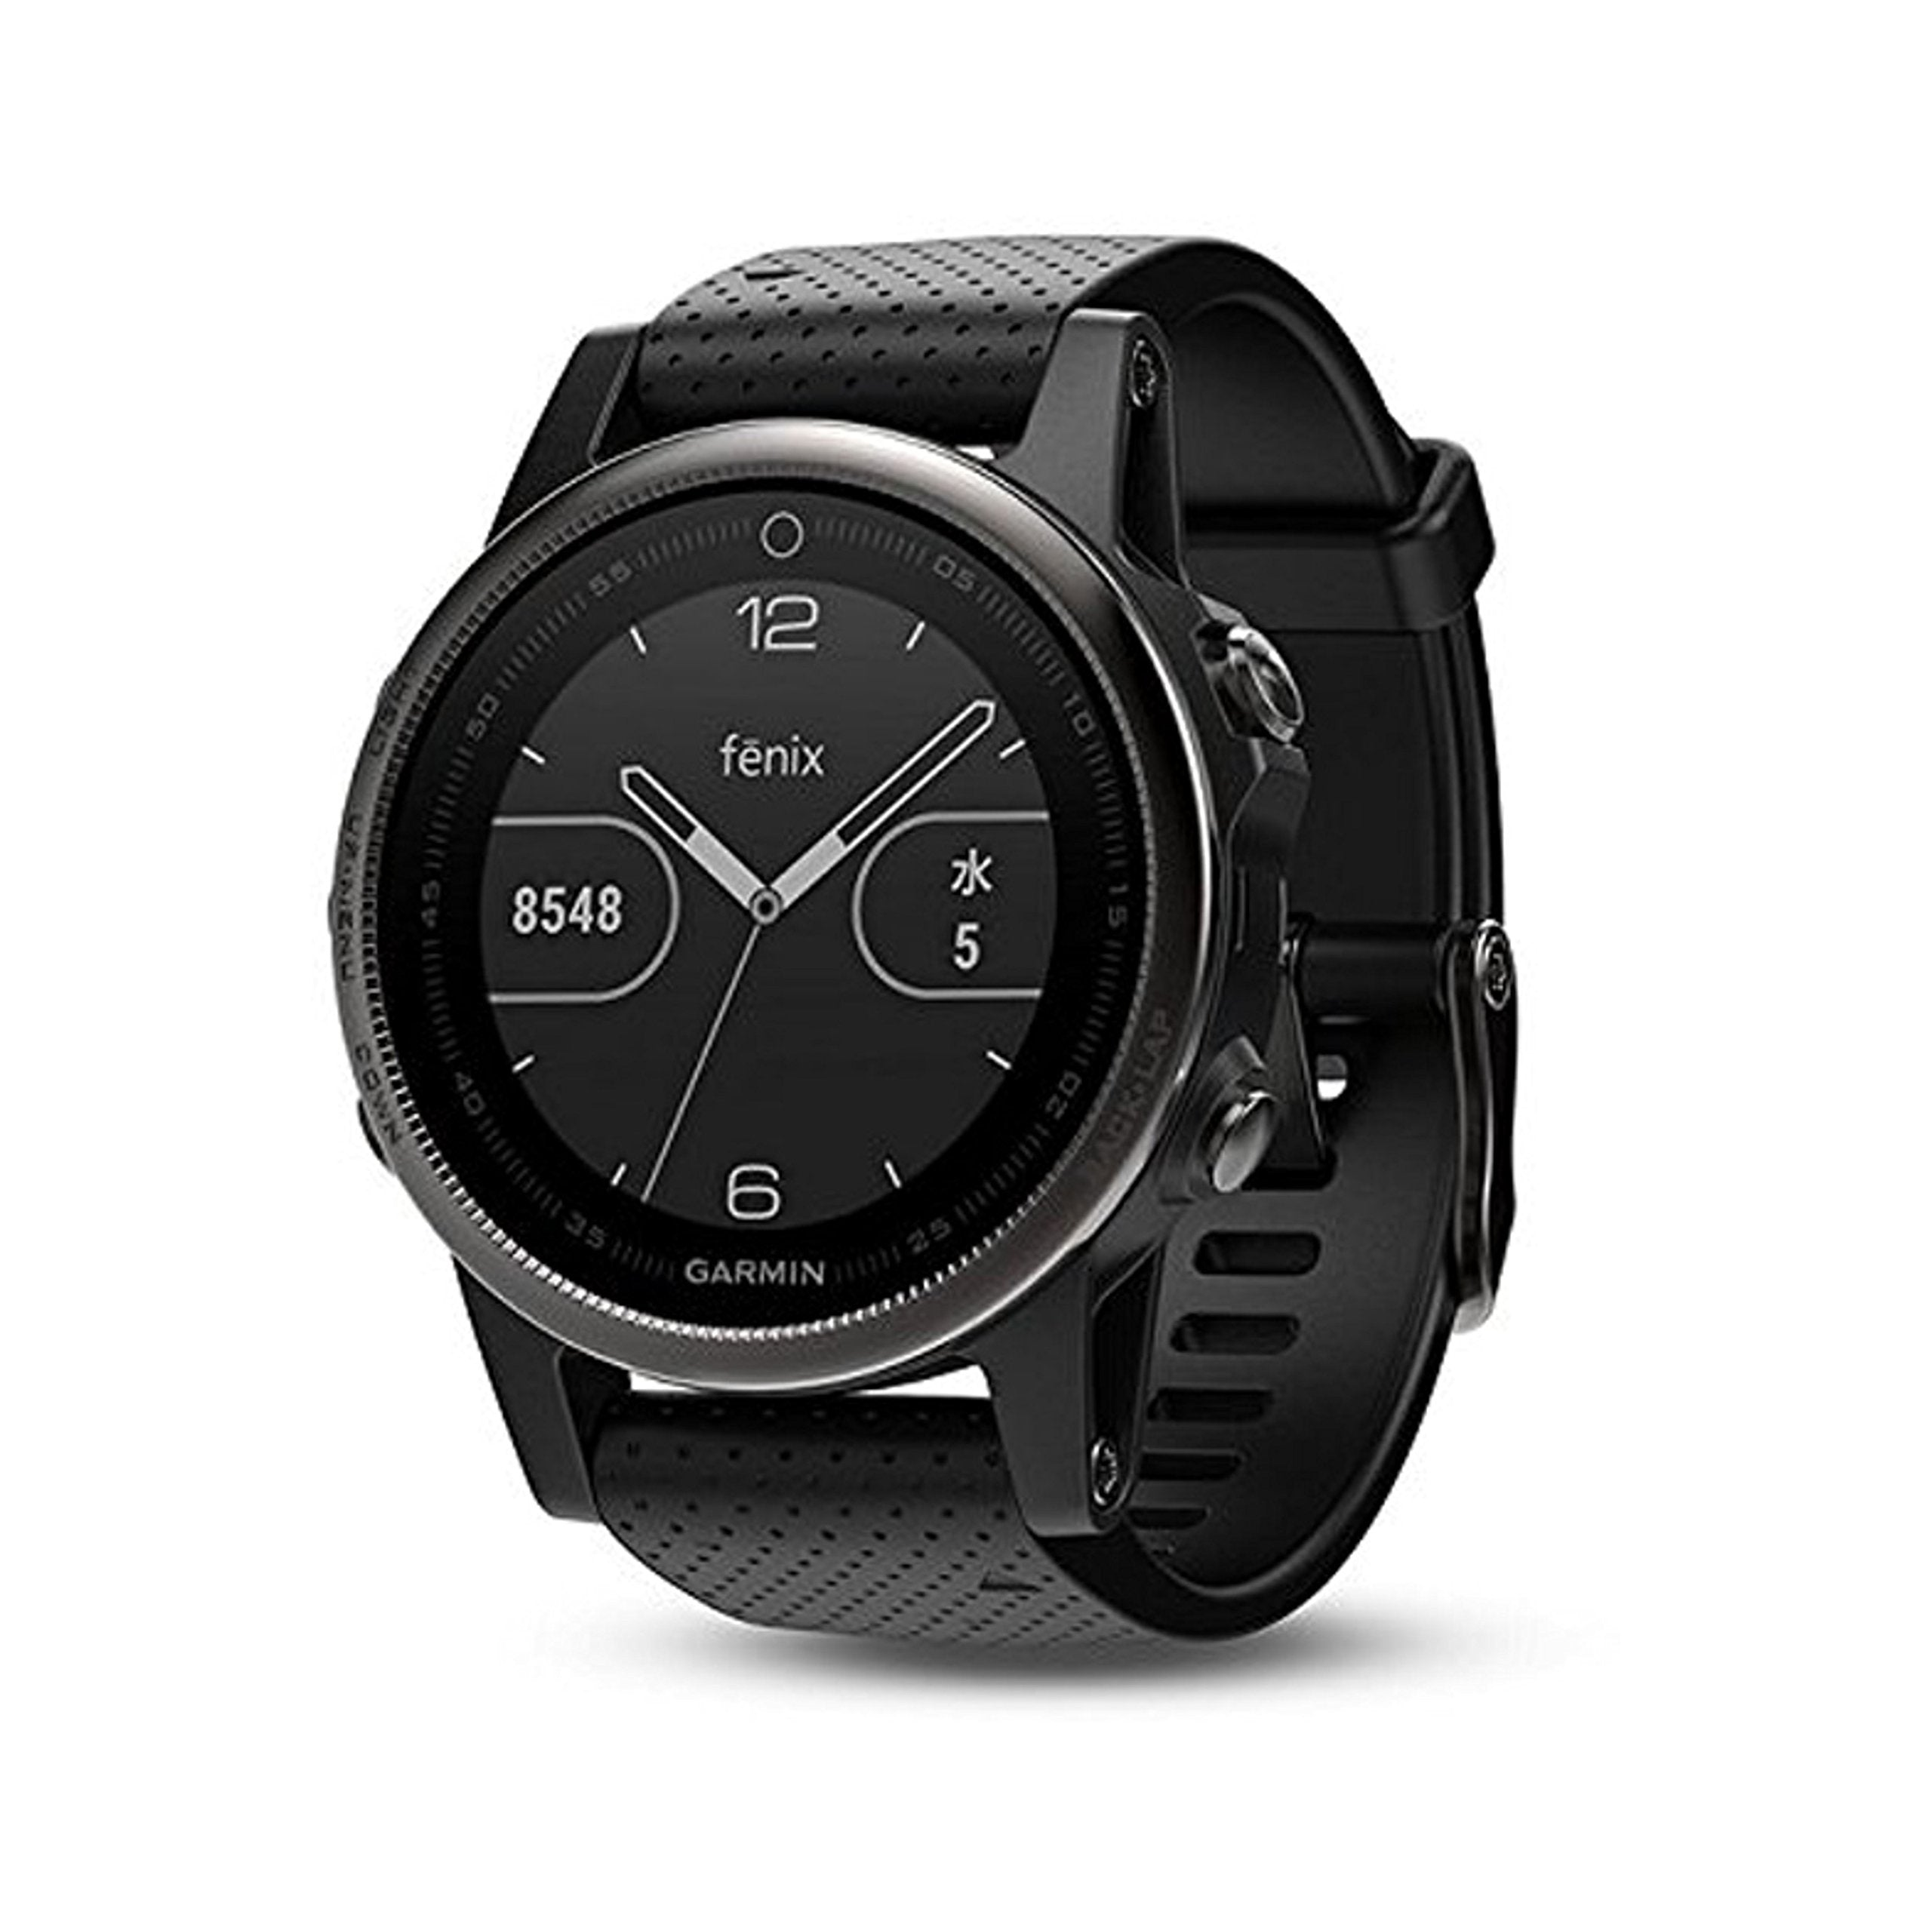 Garmin 010-01685-02 Fenix 5s GPS Watch WW, Silver with Black band - yrGear Australia